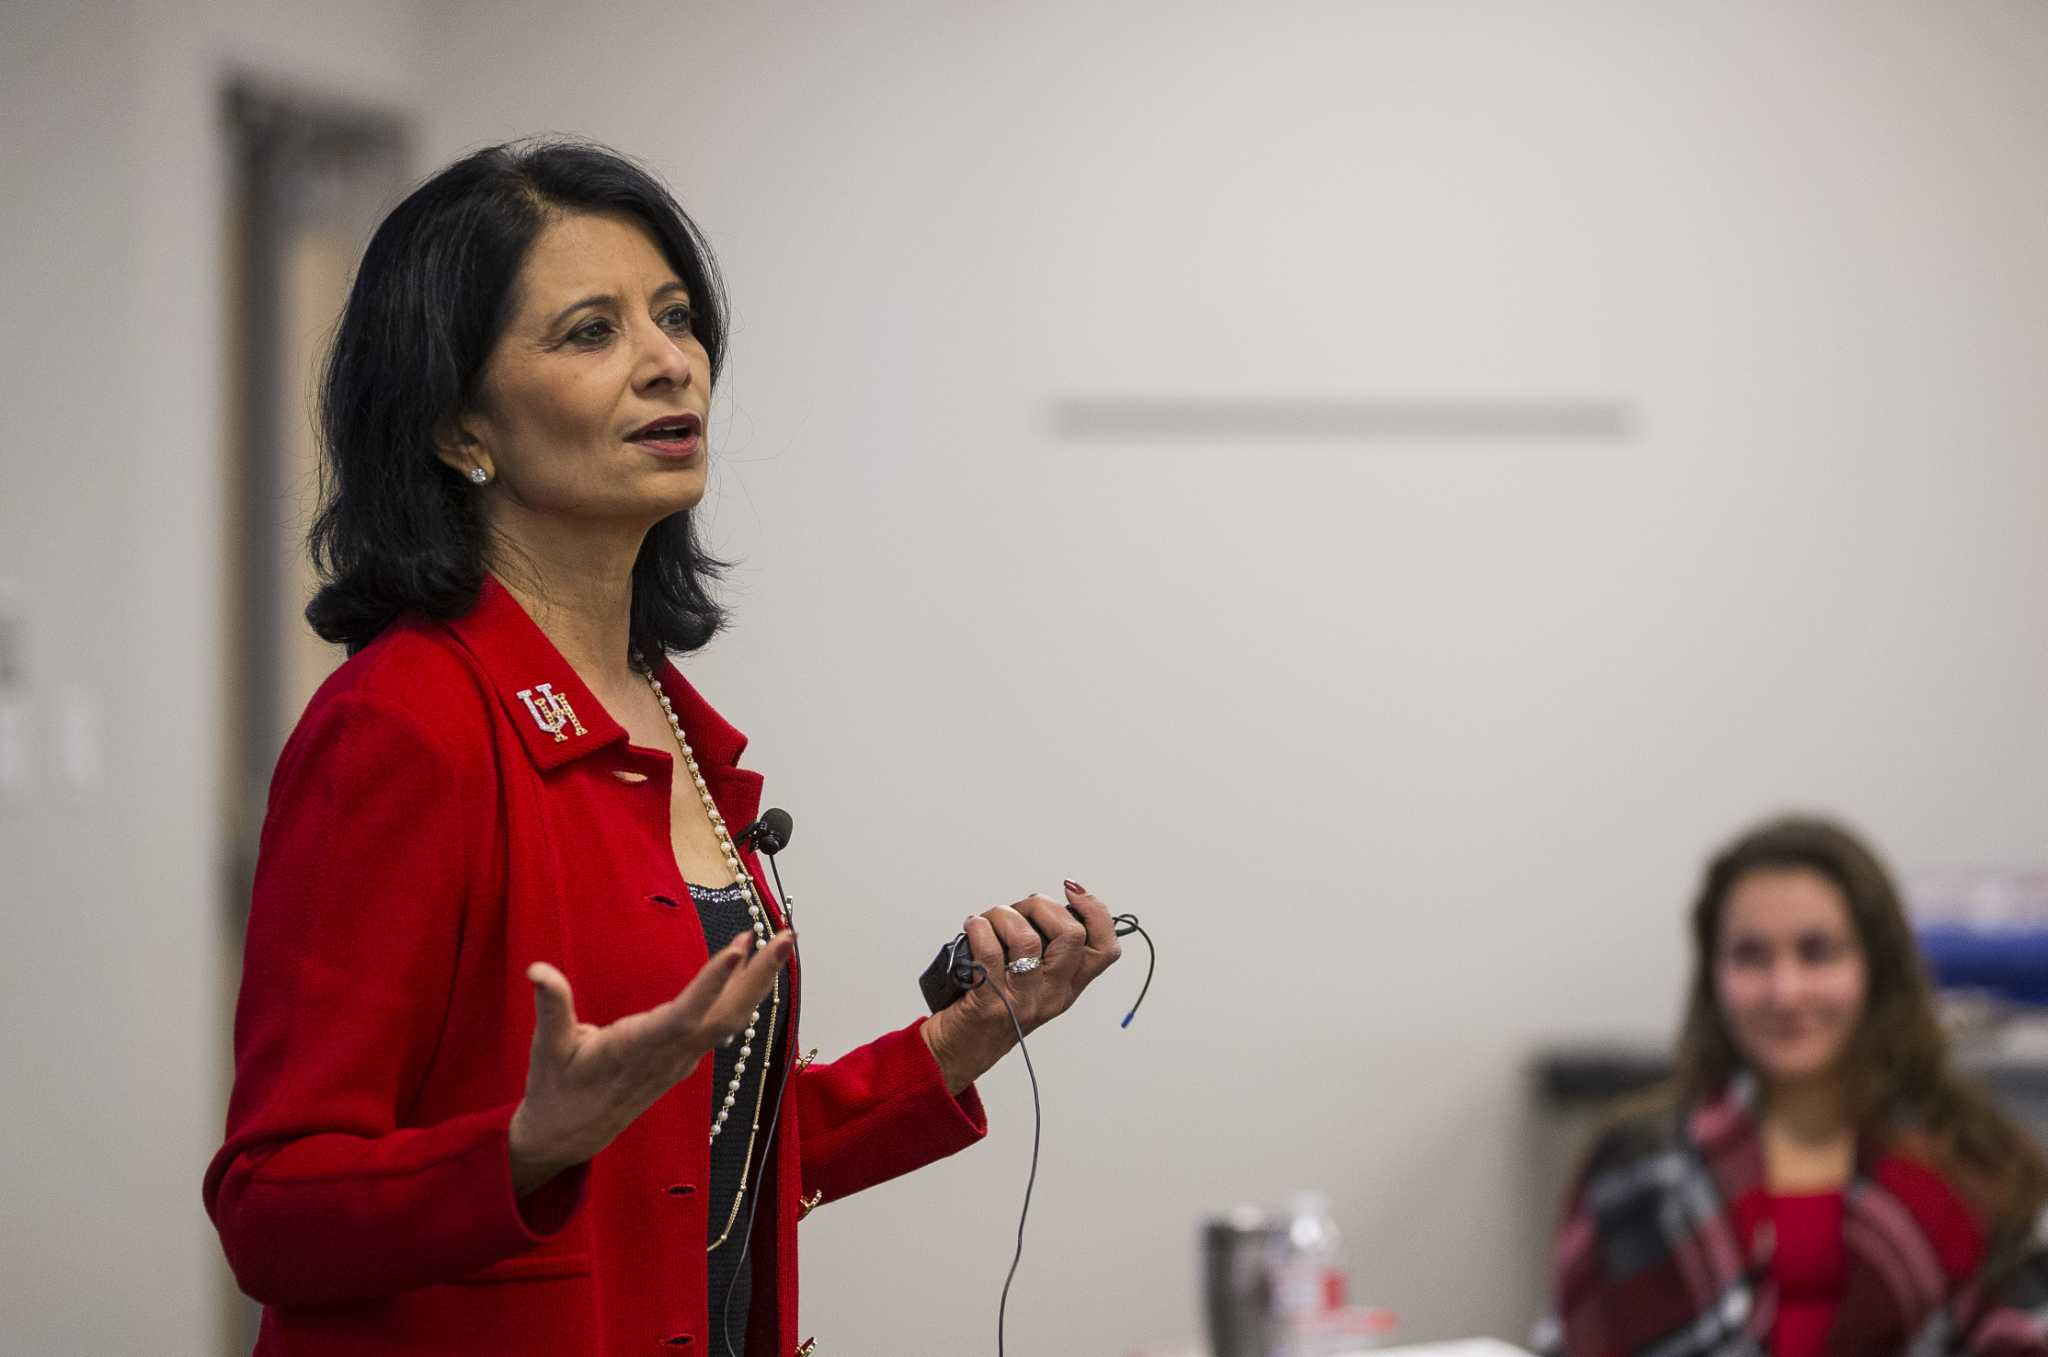 New medical school at UH to offer 'value-added' campus experience, Renu Khator says